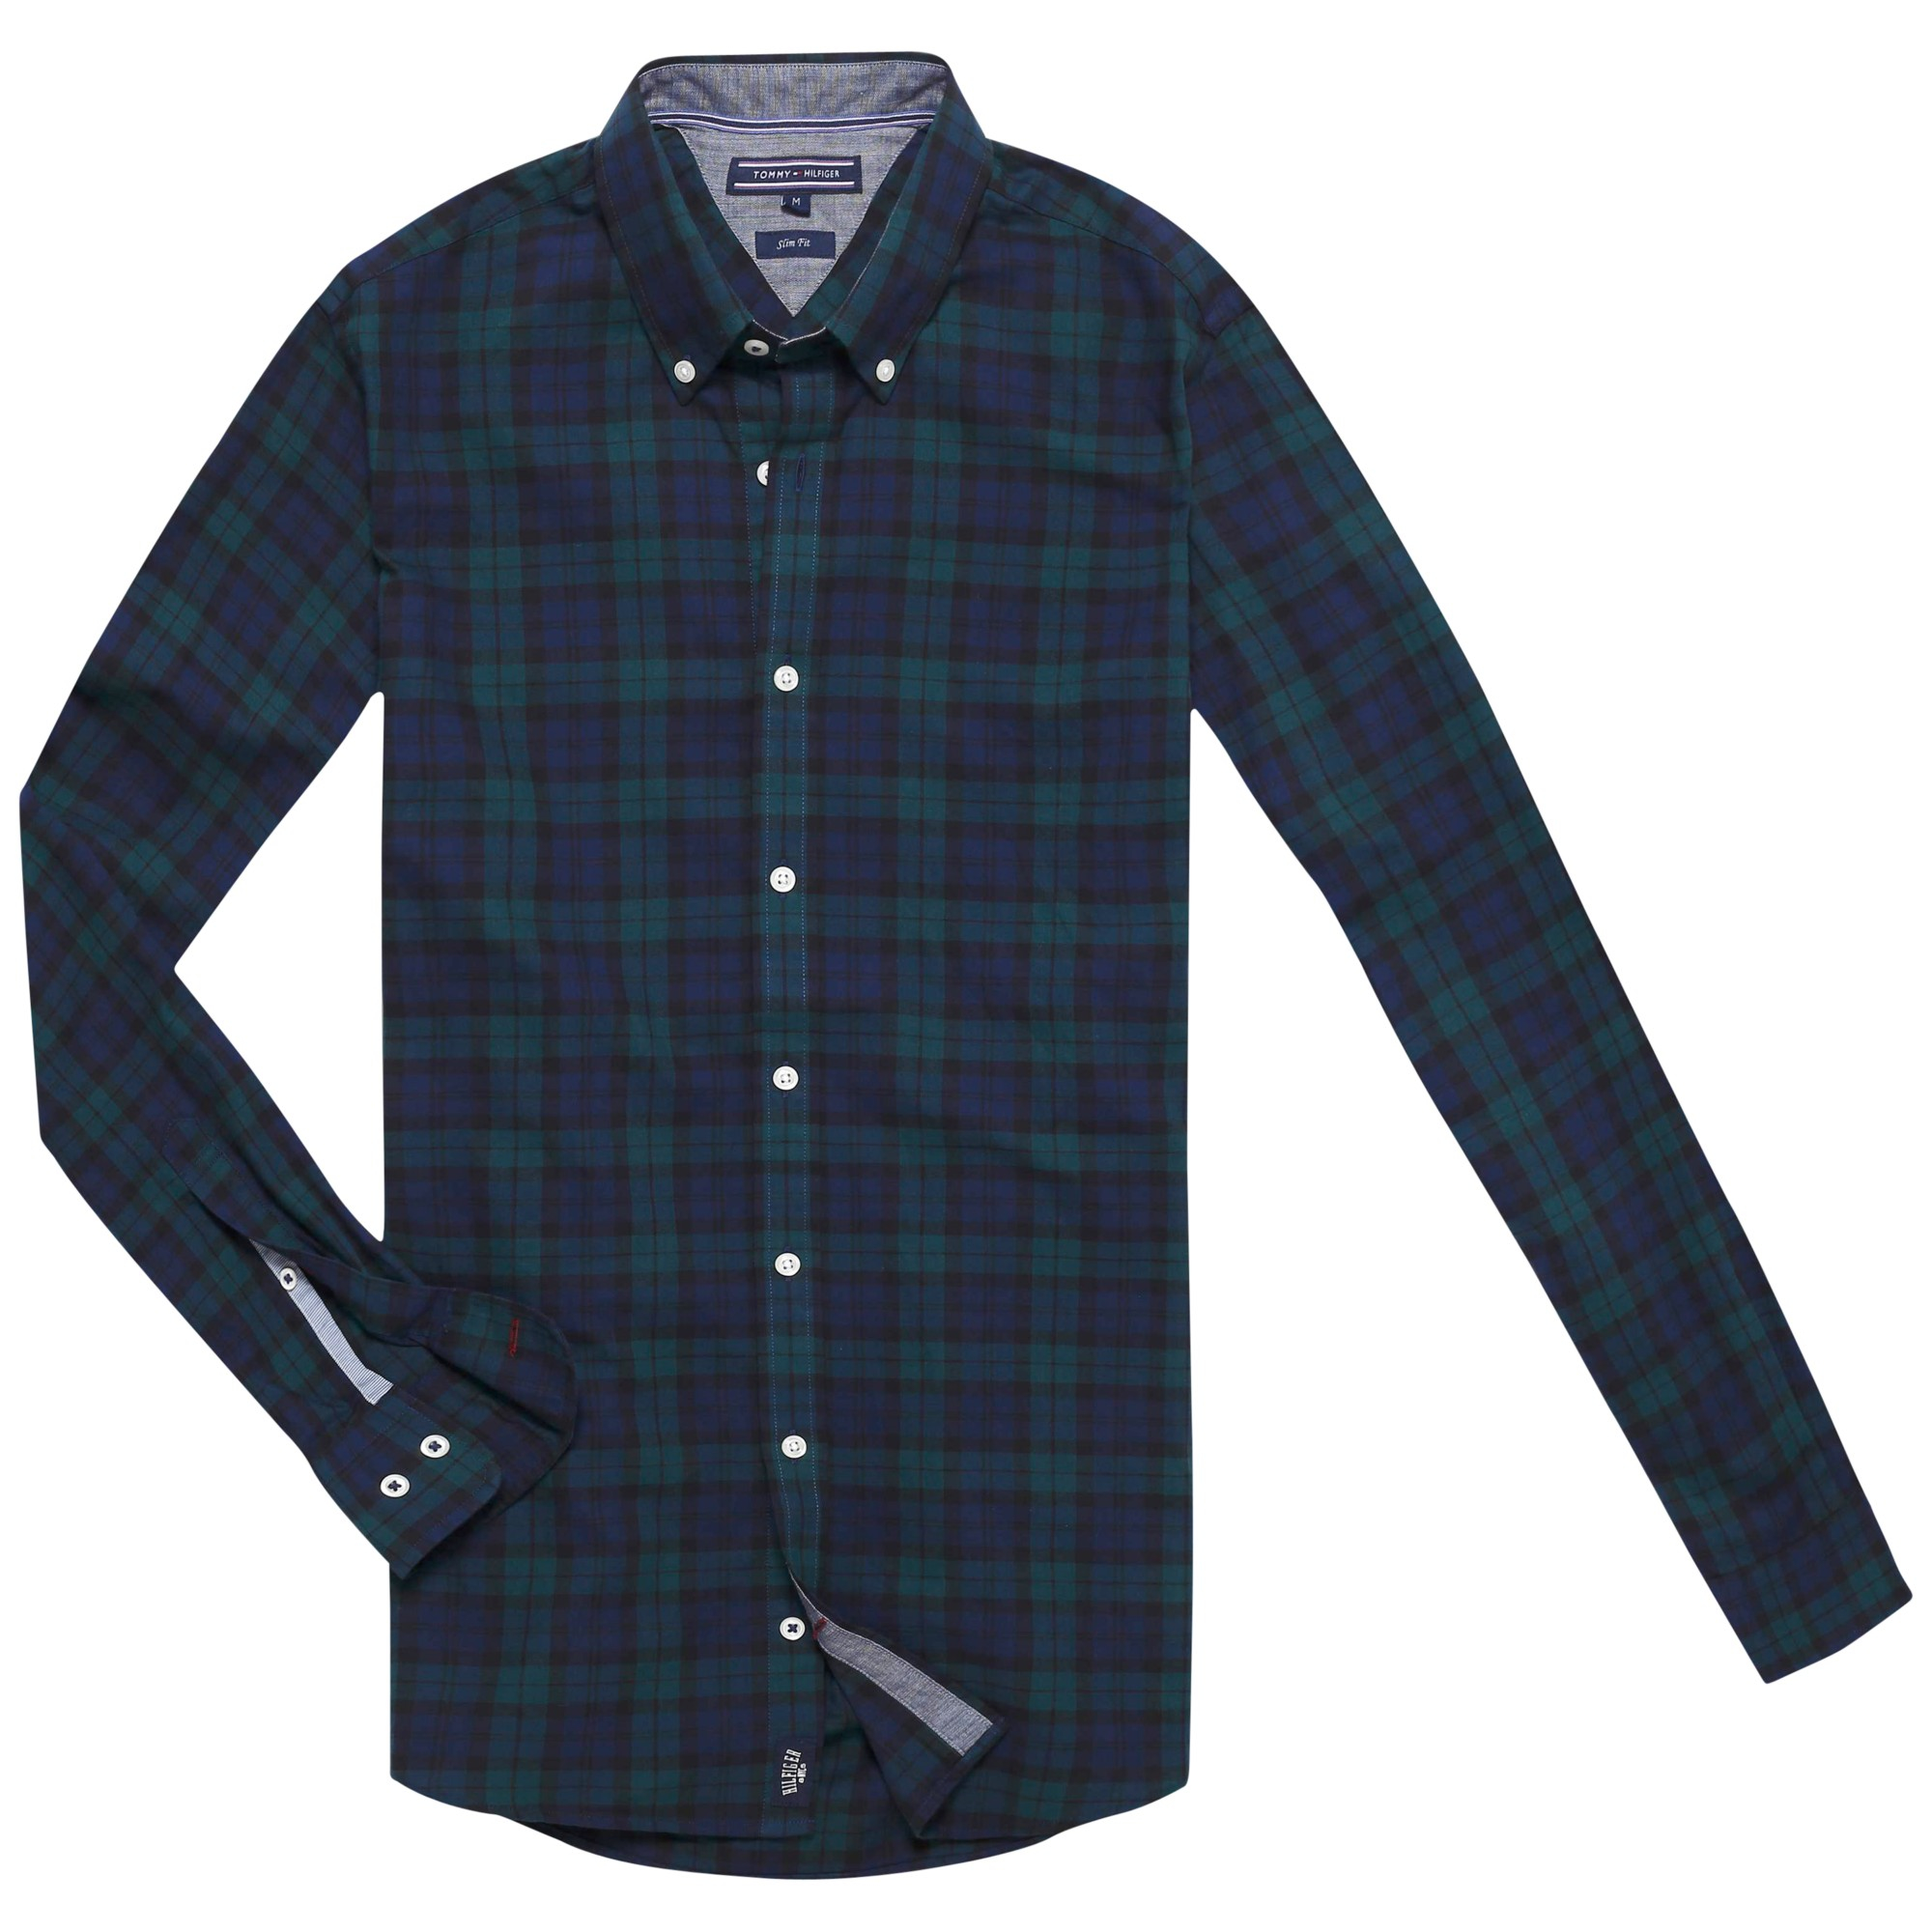 Tommy hilfiger Blackwatch Check Shirt in Blue for Men